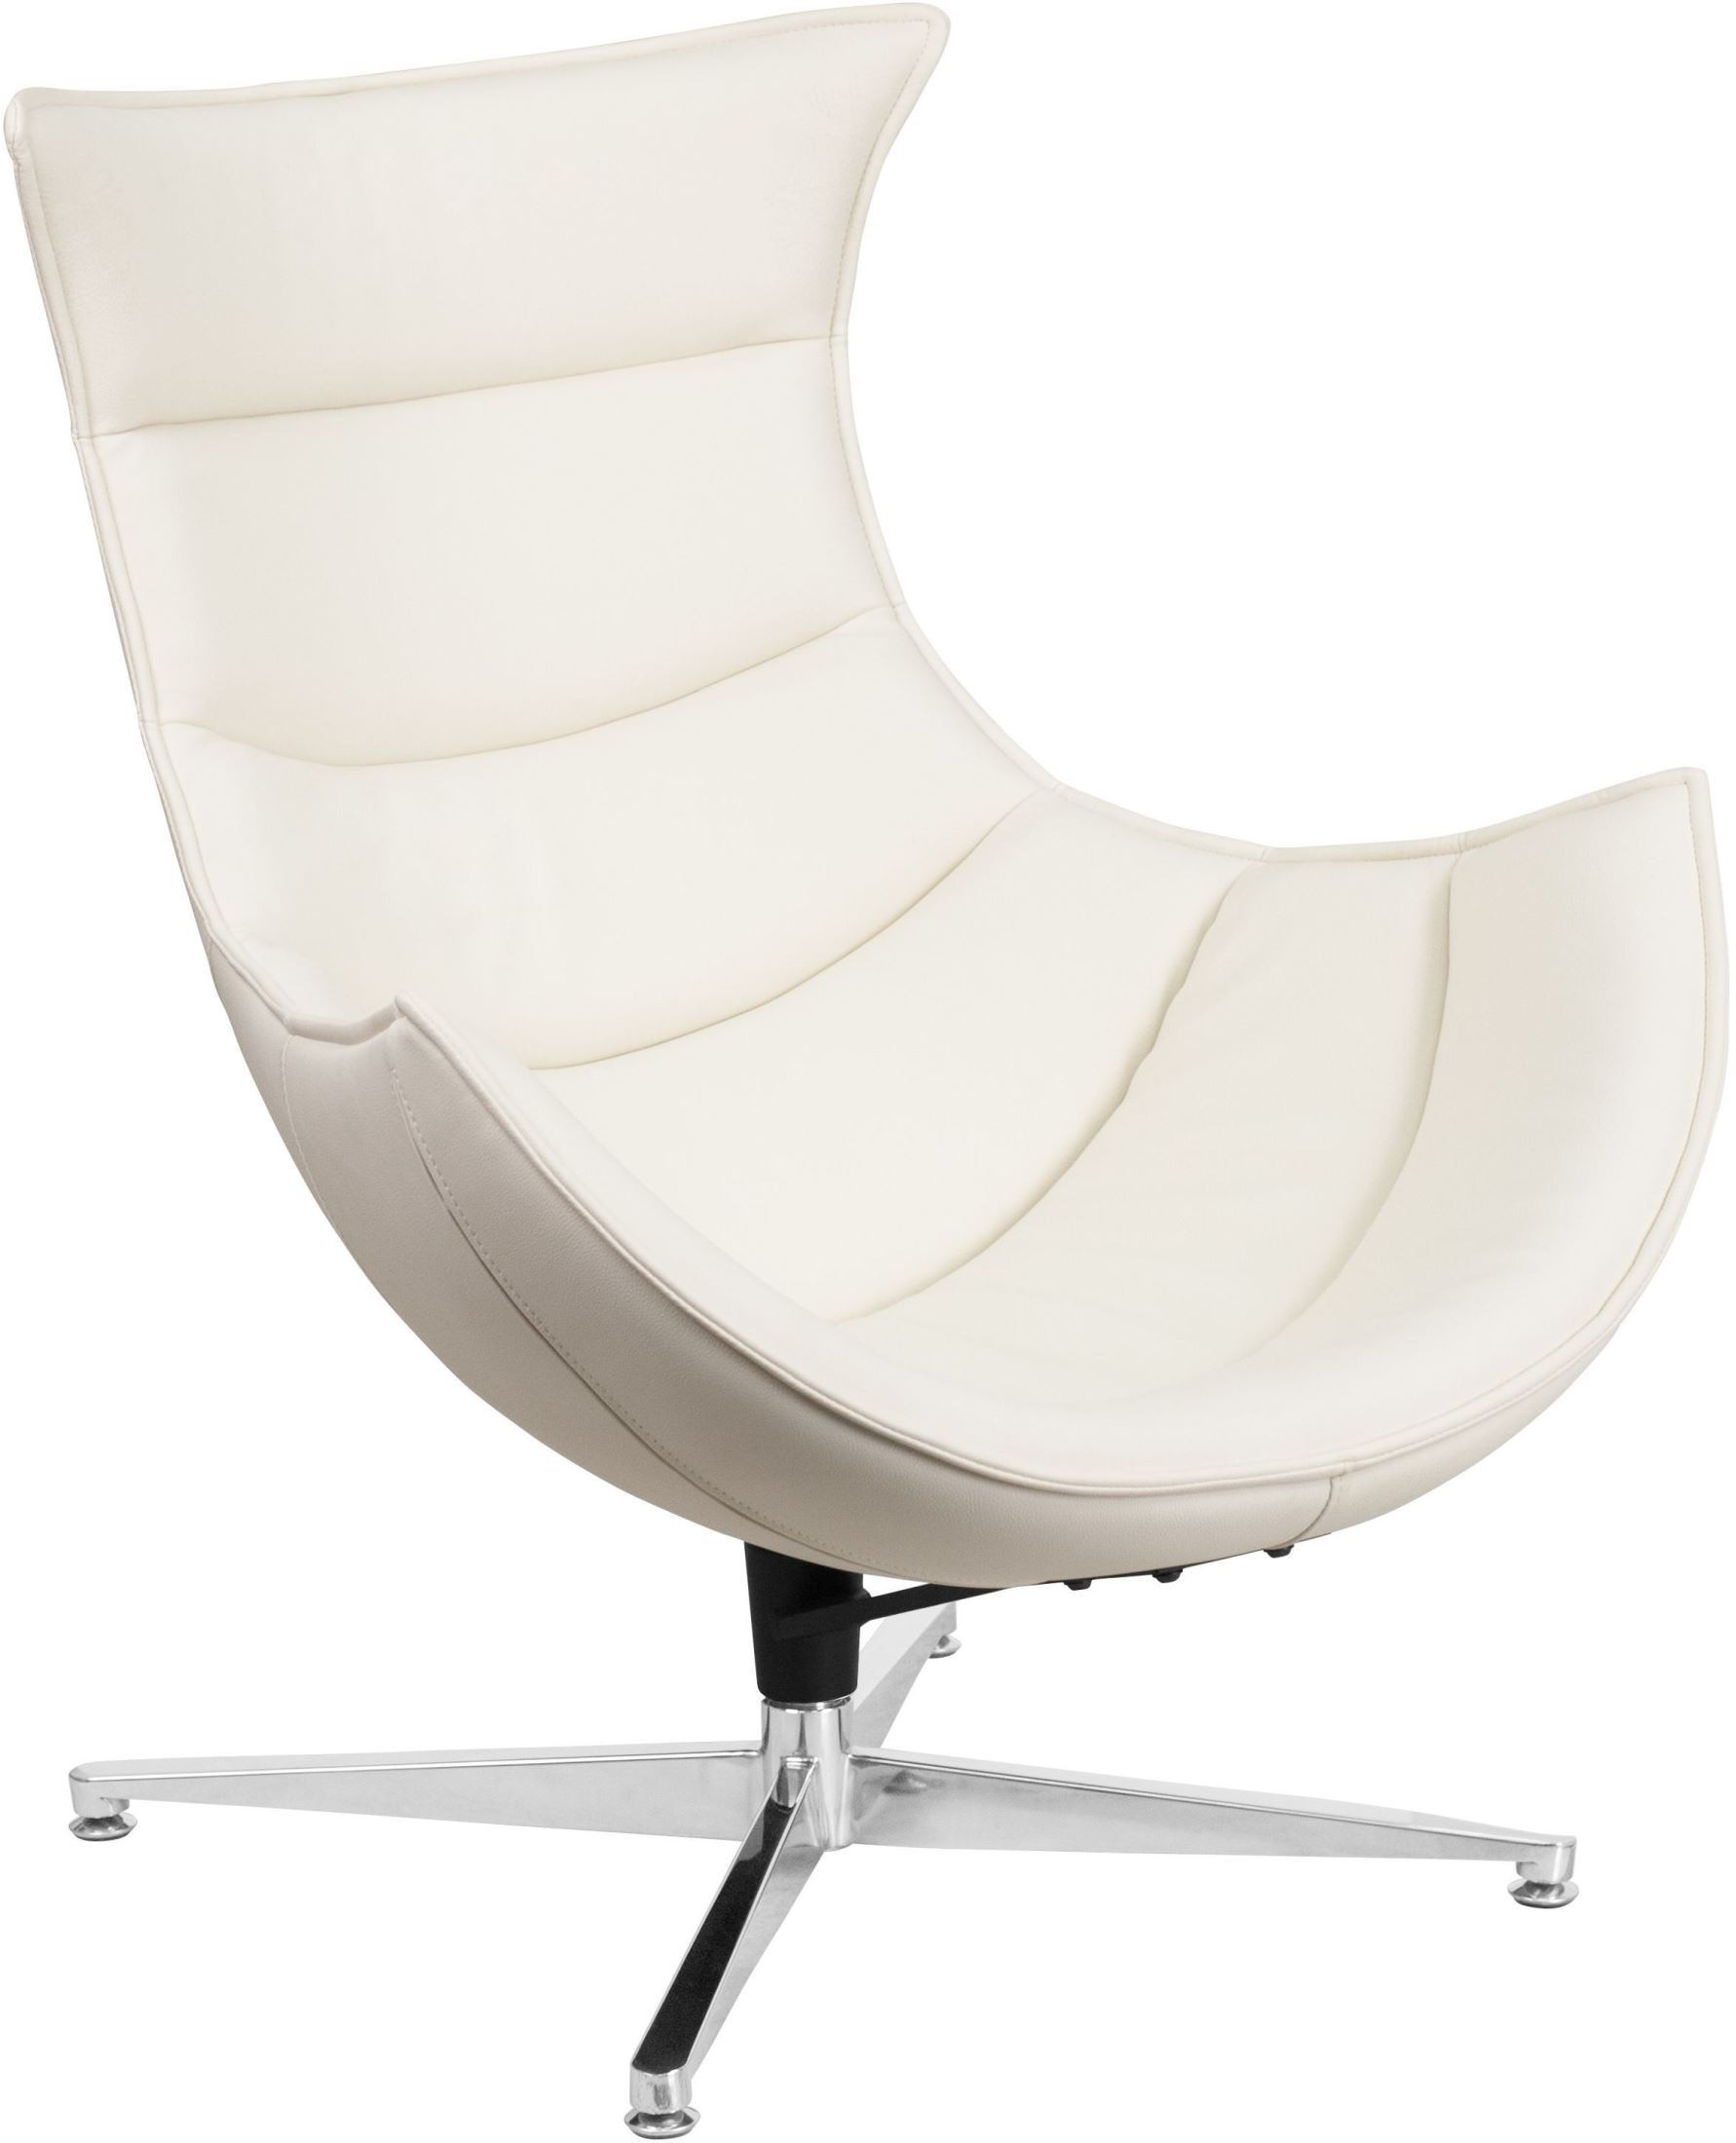 White Leather Swivel Chair White Leather Swivel Cocoon Chair From Renegade Coleman